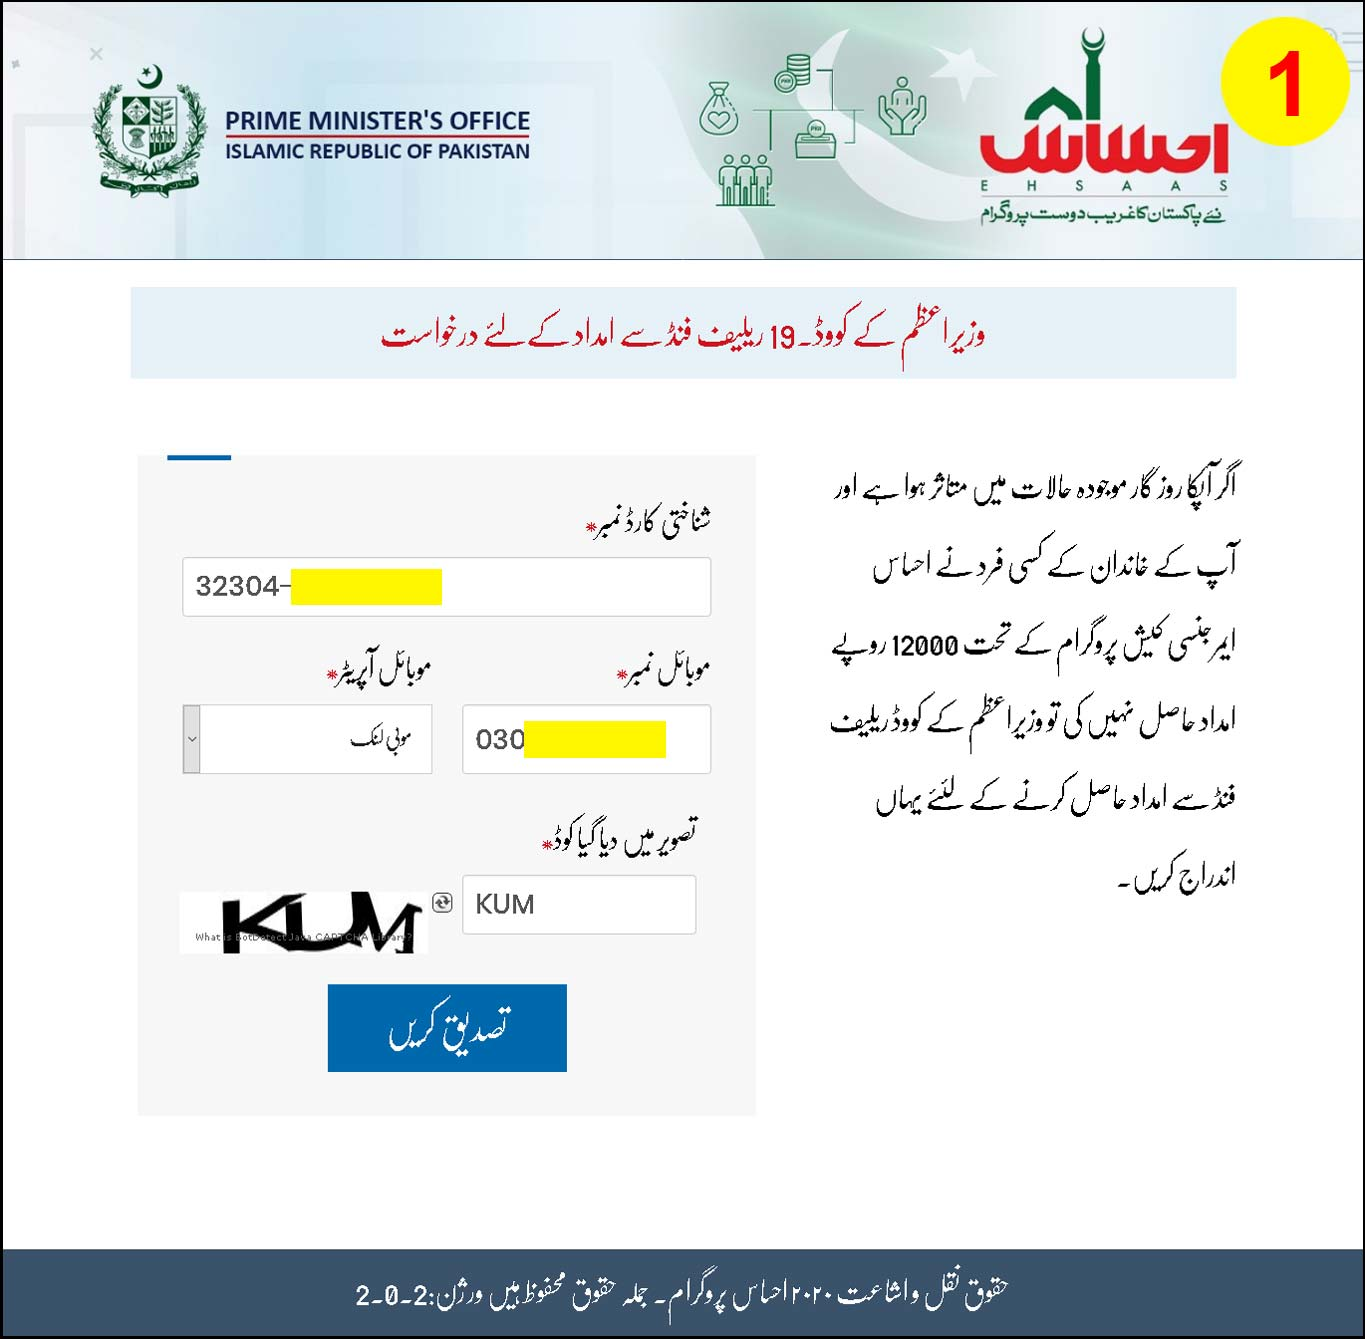 Ehsaas Labour Program How to apply step 1